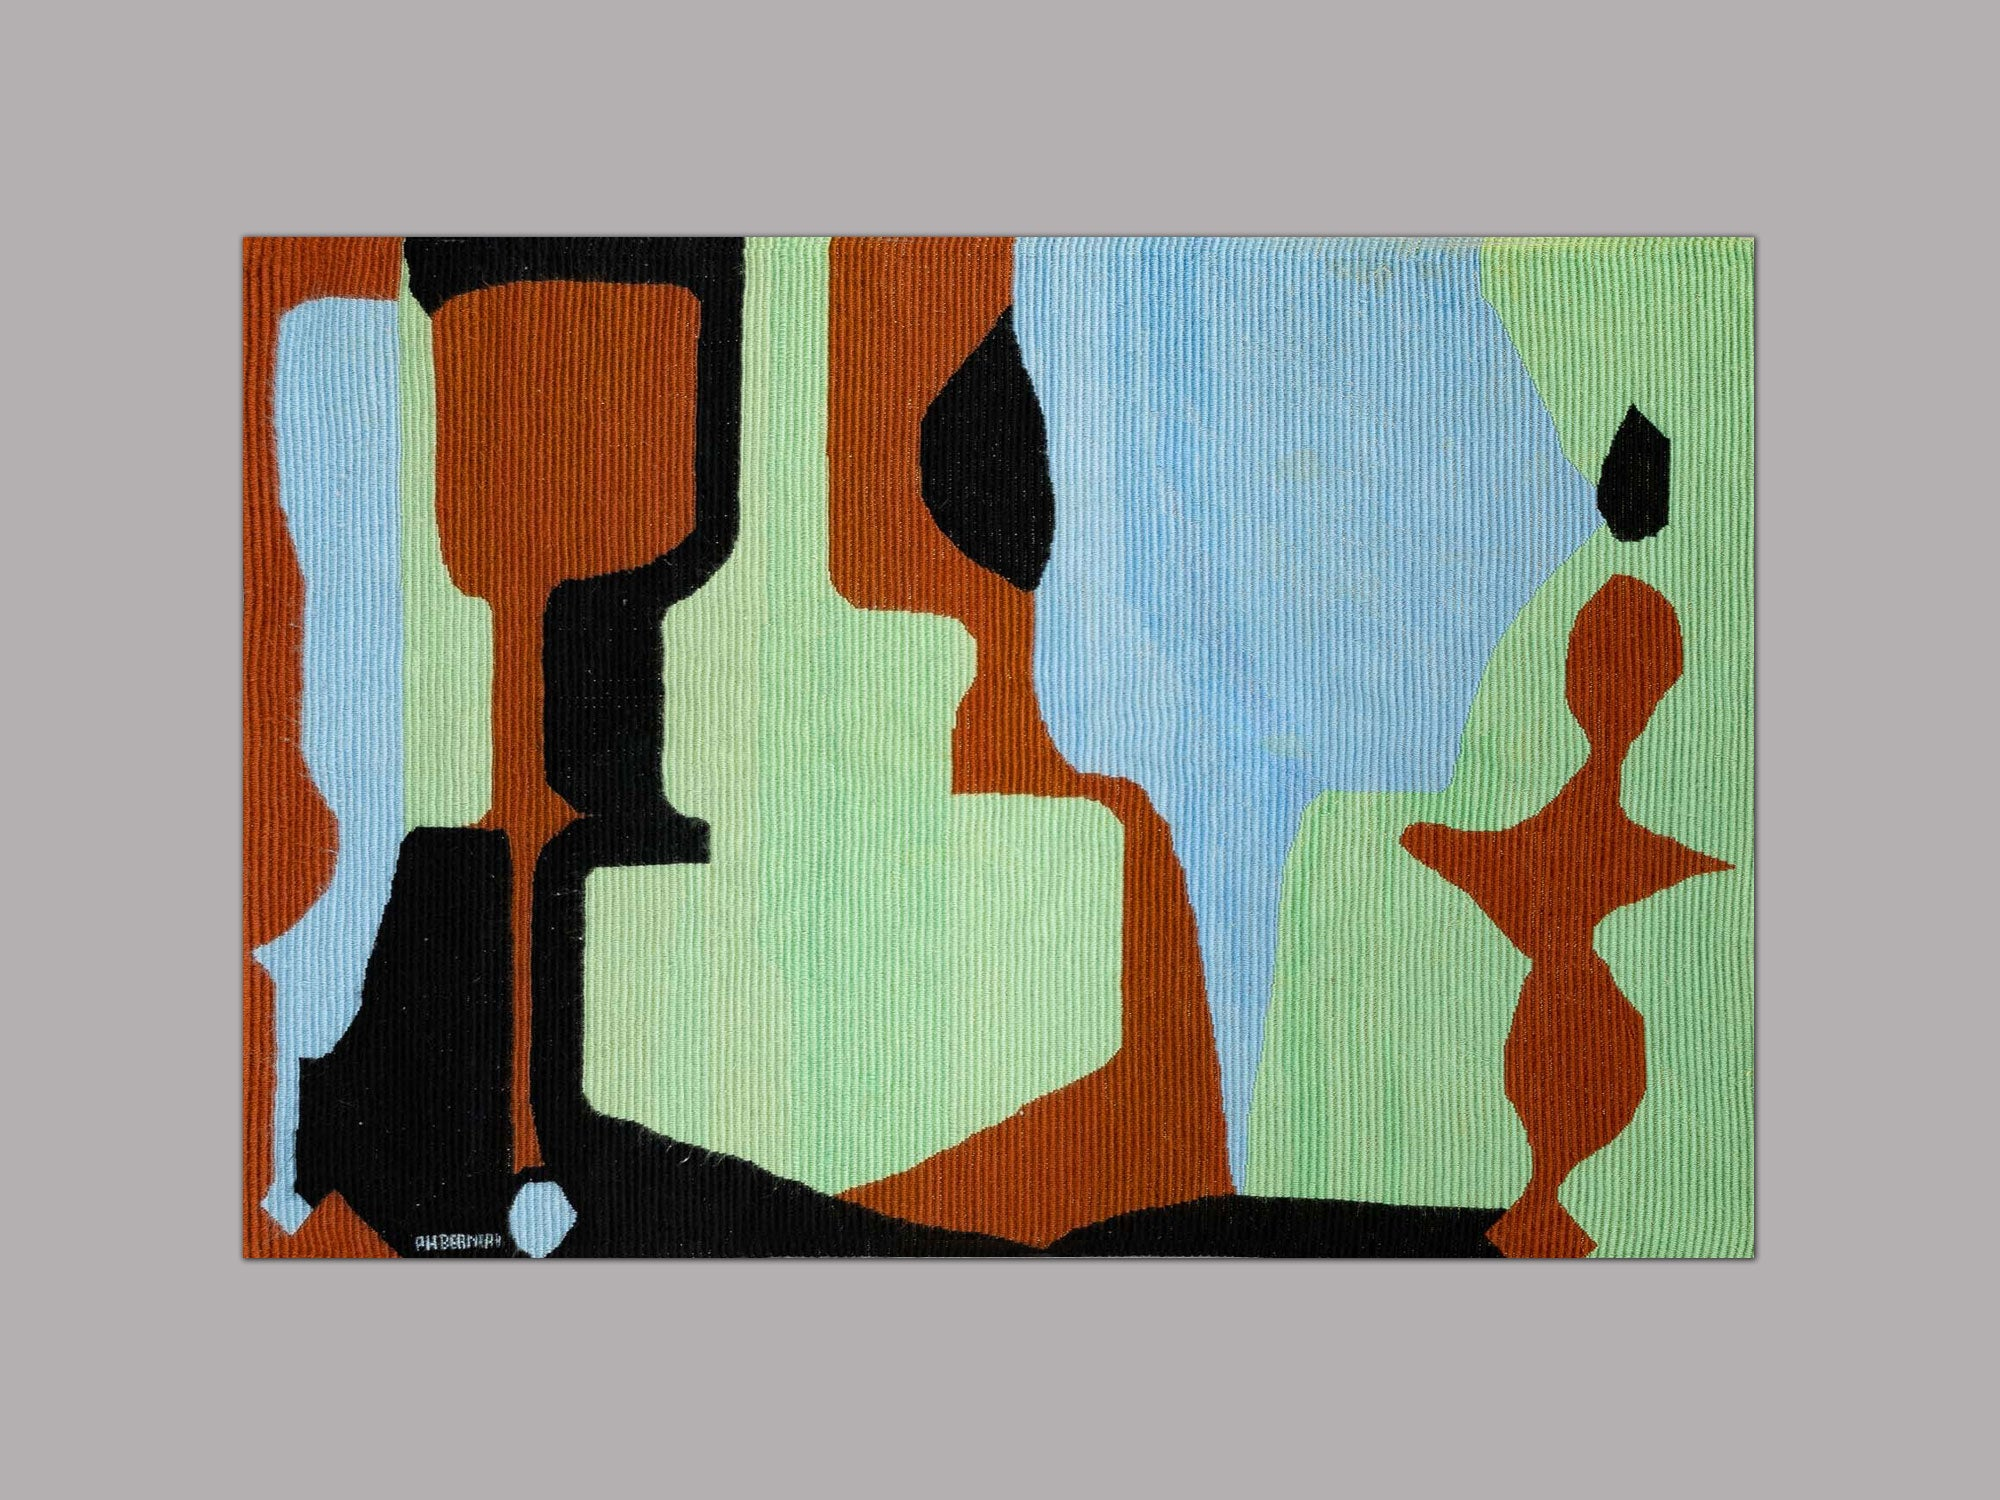 Tapisserie murale puriste par Philippe Bernard, France (vers 1955)..Purist wall tapestry by Philippe Bernard, France (circa 1955)